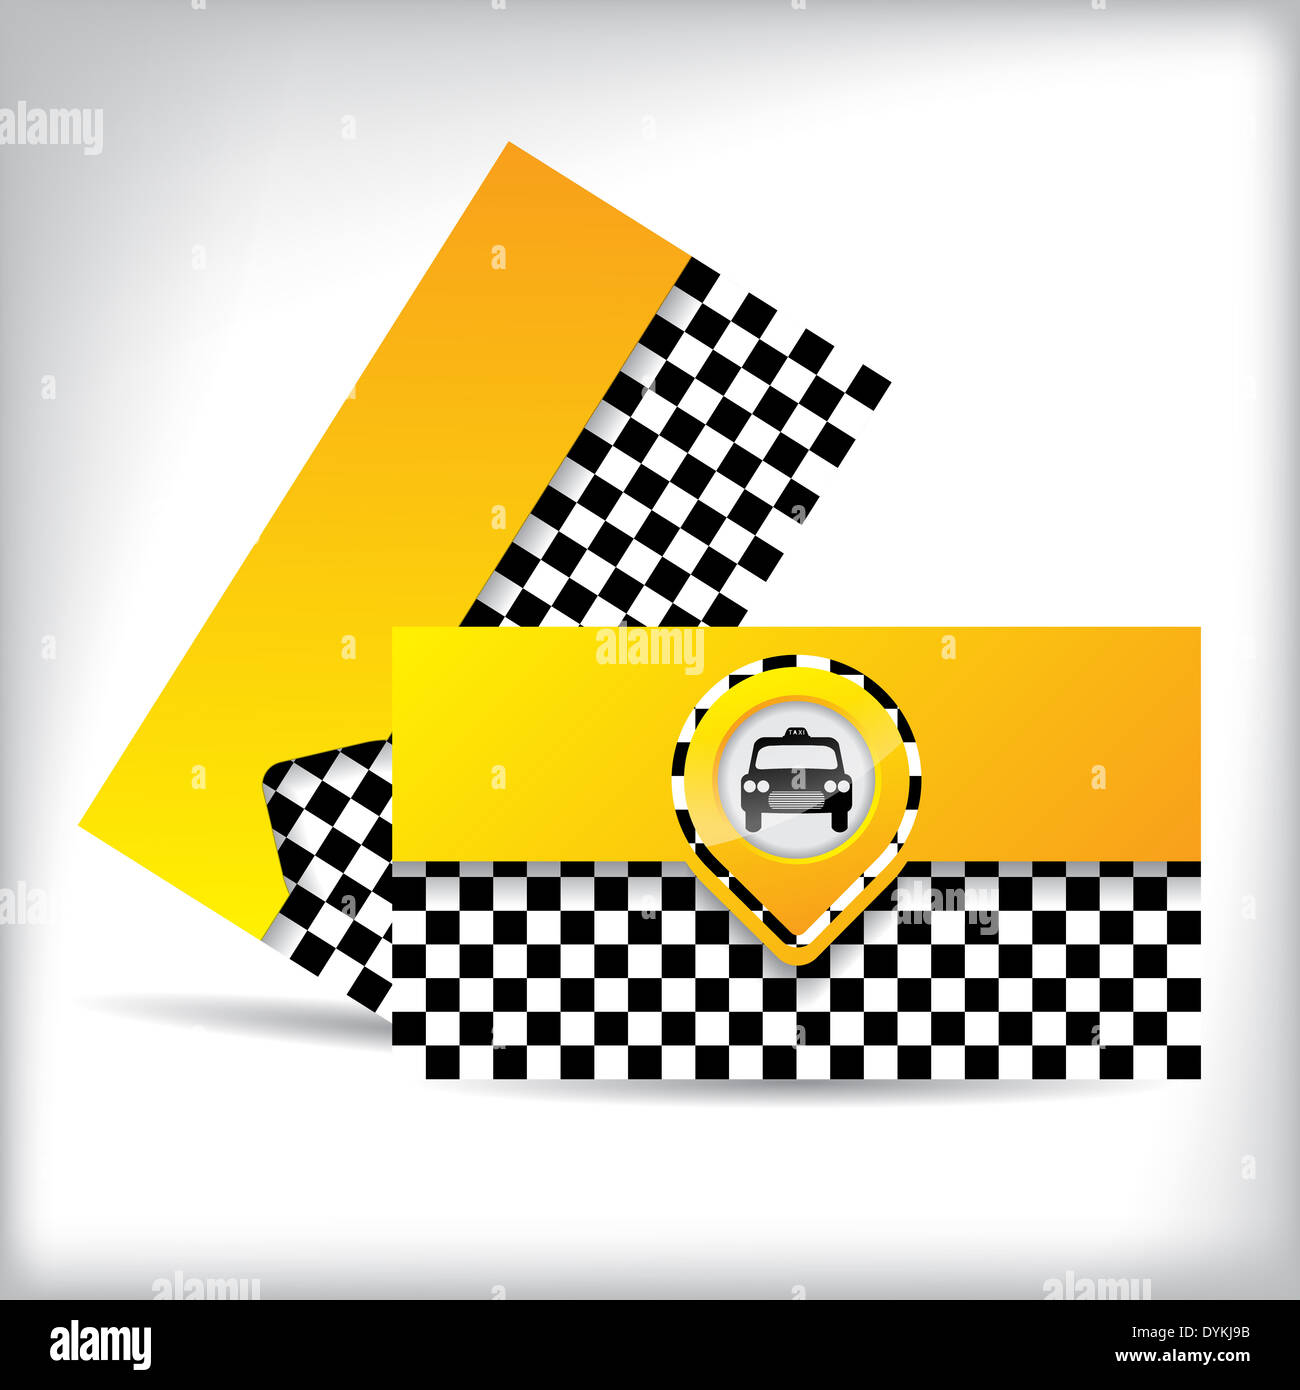 Business card design with car symbol for taxi companies and drivers business card design with car symbol for taxi companies and drivers colourmoves